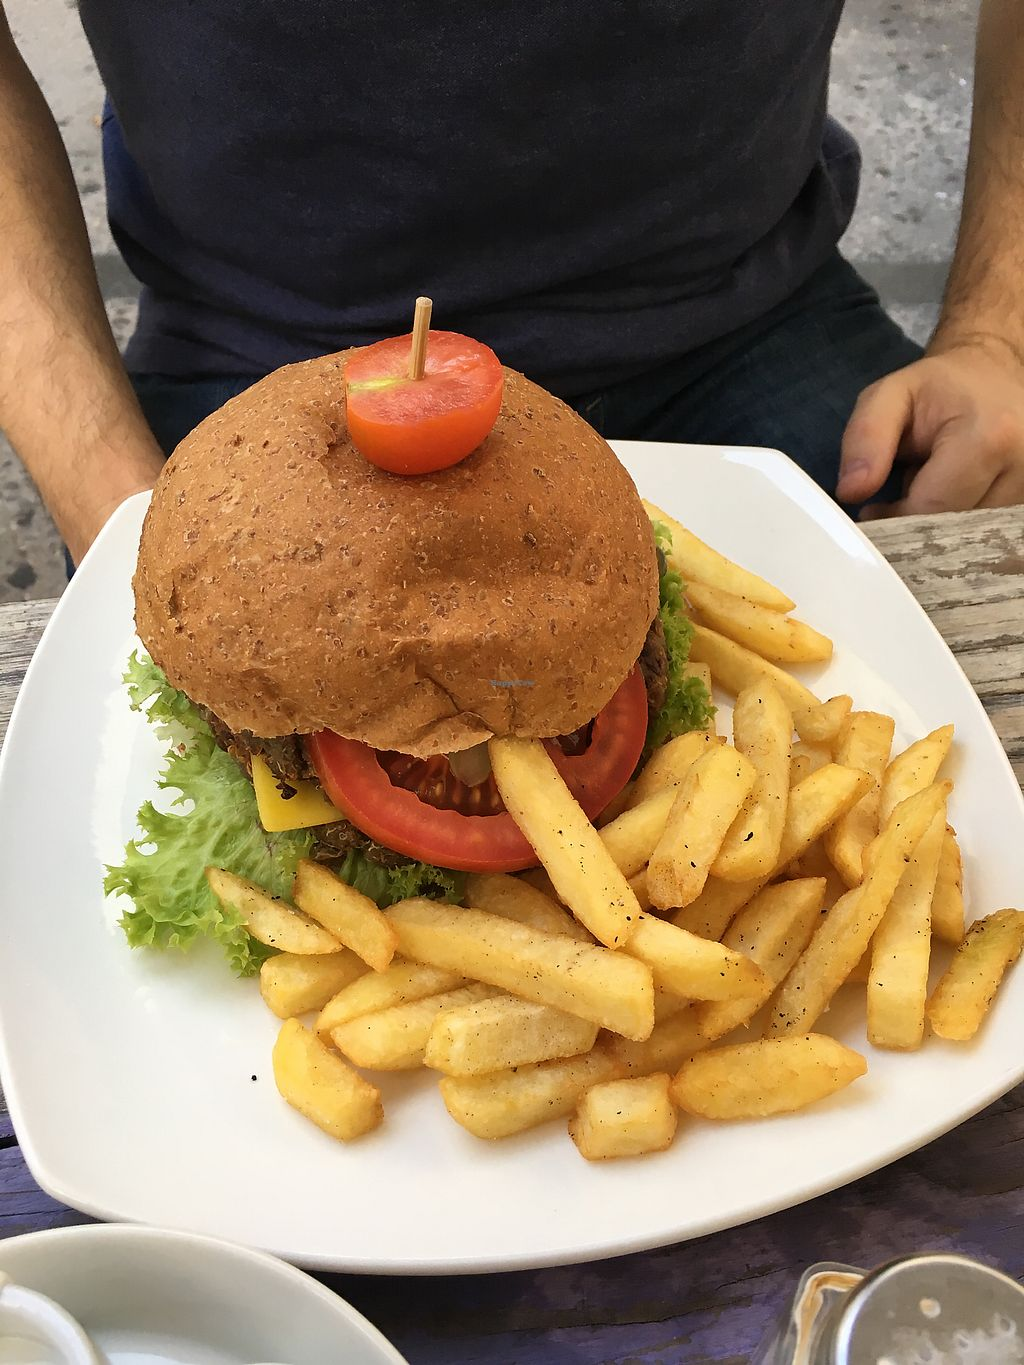 """Photo of Katako Veg  by <a href=""""/members/profile/AimeeS"""">AimeeS</a> <br/>Upa Laia burger with fries <br/> November 28, 2017  - <a href='/contact/abuse/image/92851/330010'>Report</a>"""